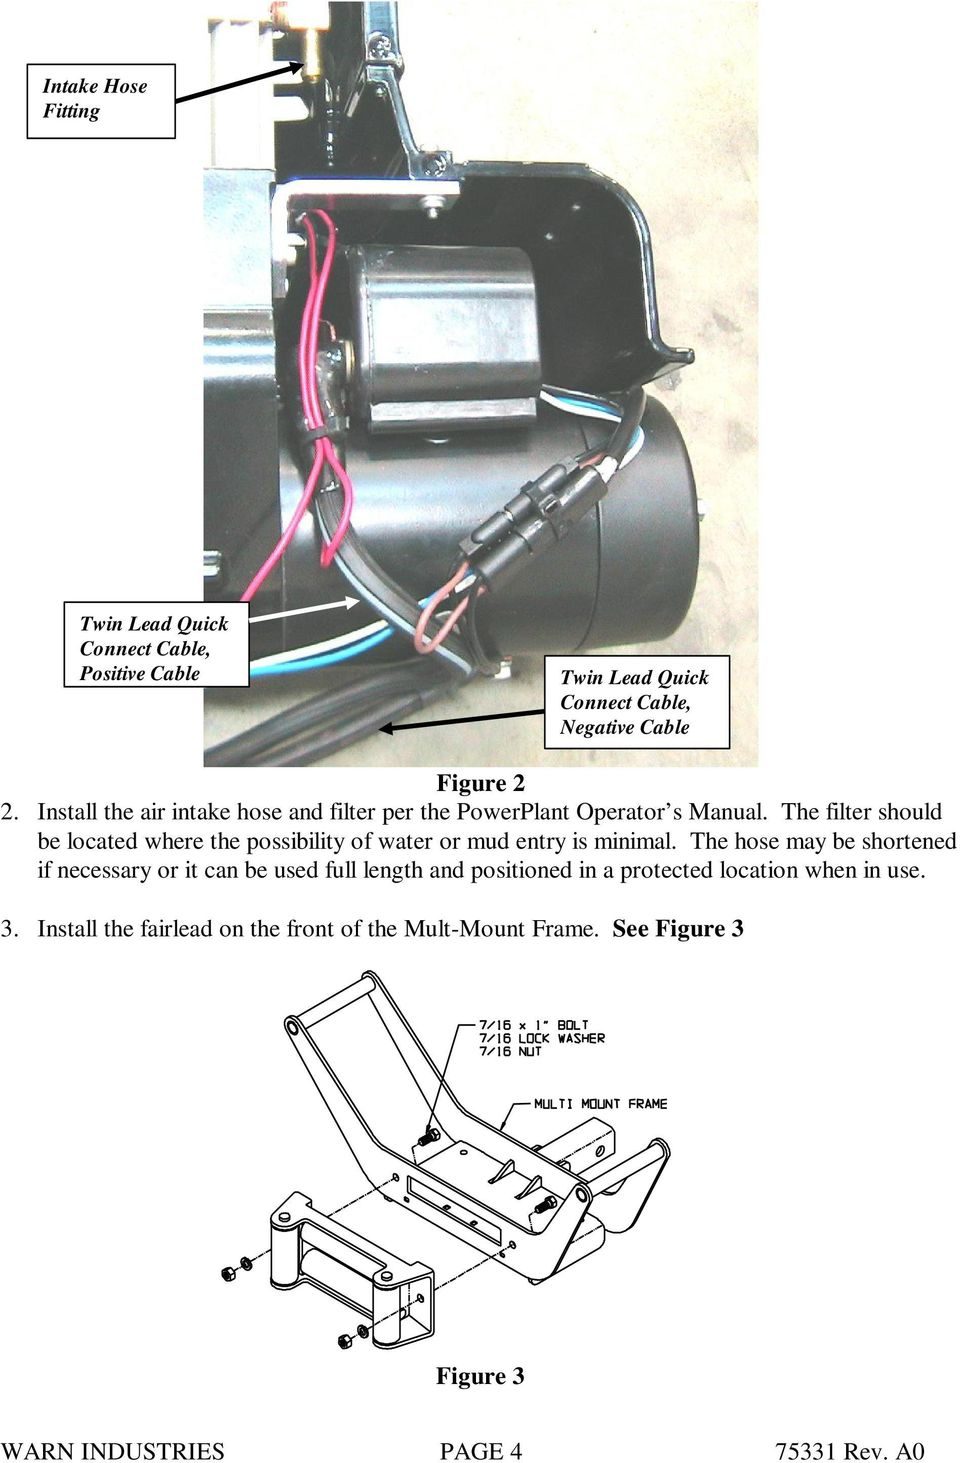 The filter should be located where the possibility of water or mud entry is minimal.